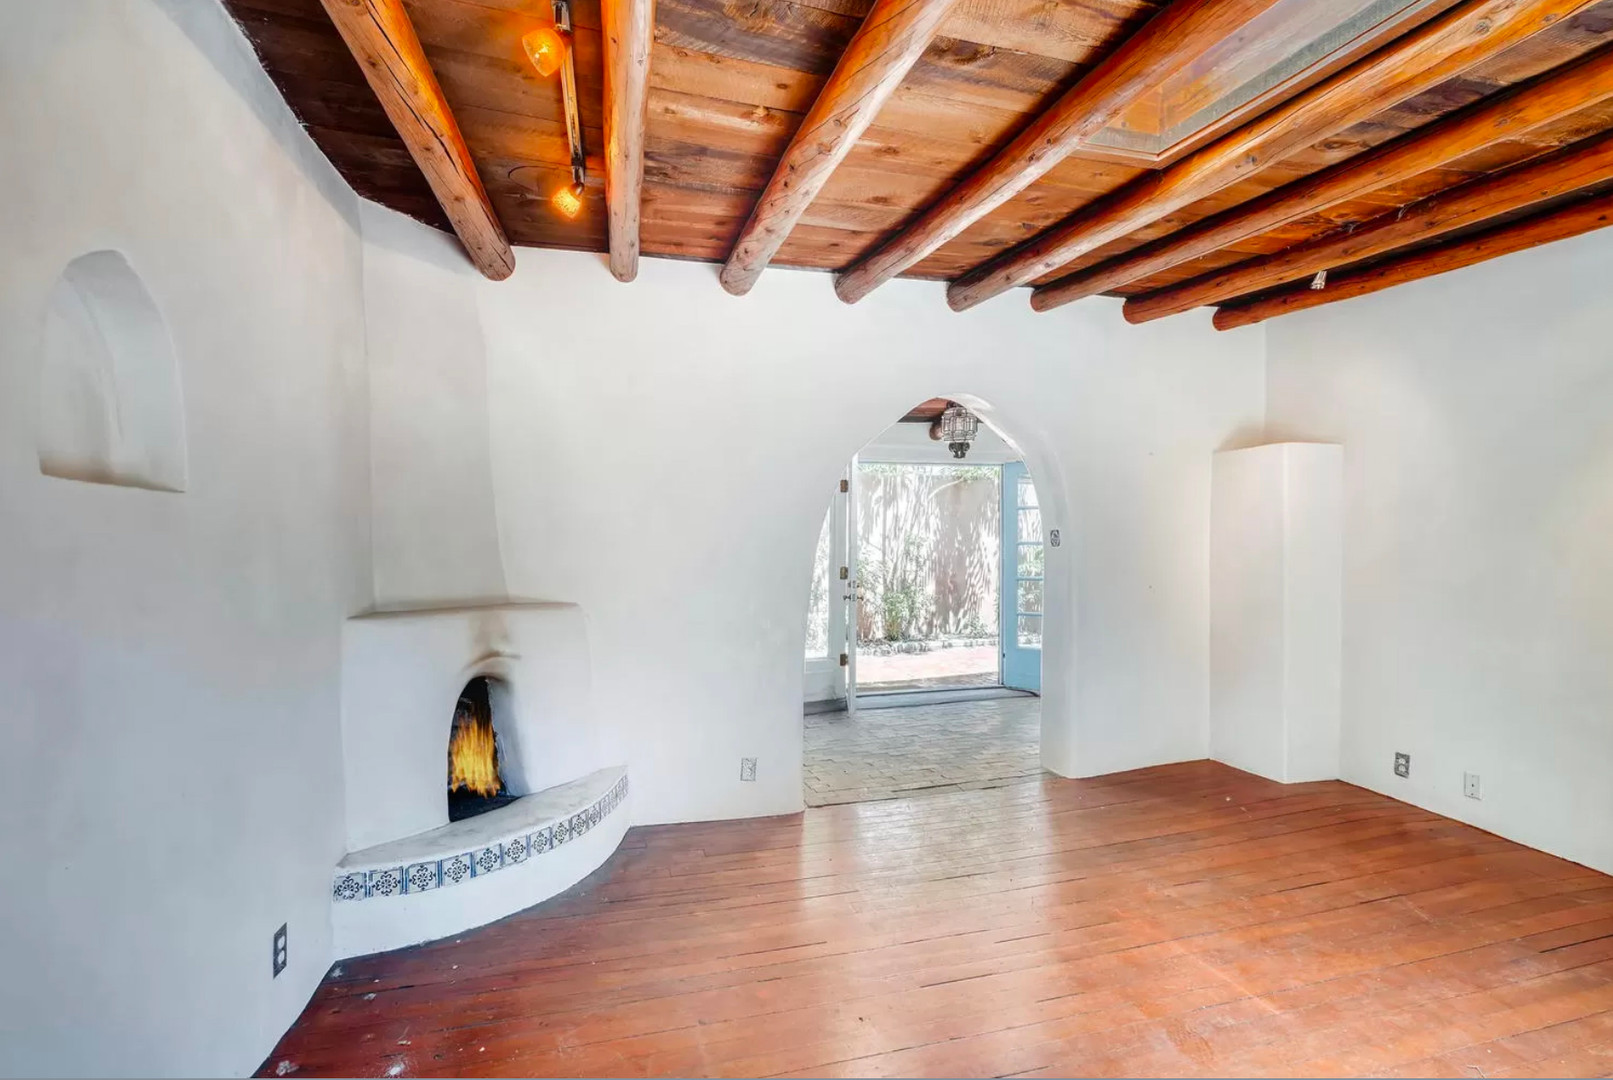 East Alameda | Kiva Fireplace, Vigas and Archway in Santa Fe Living Room